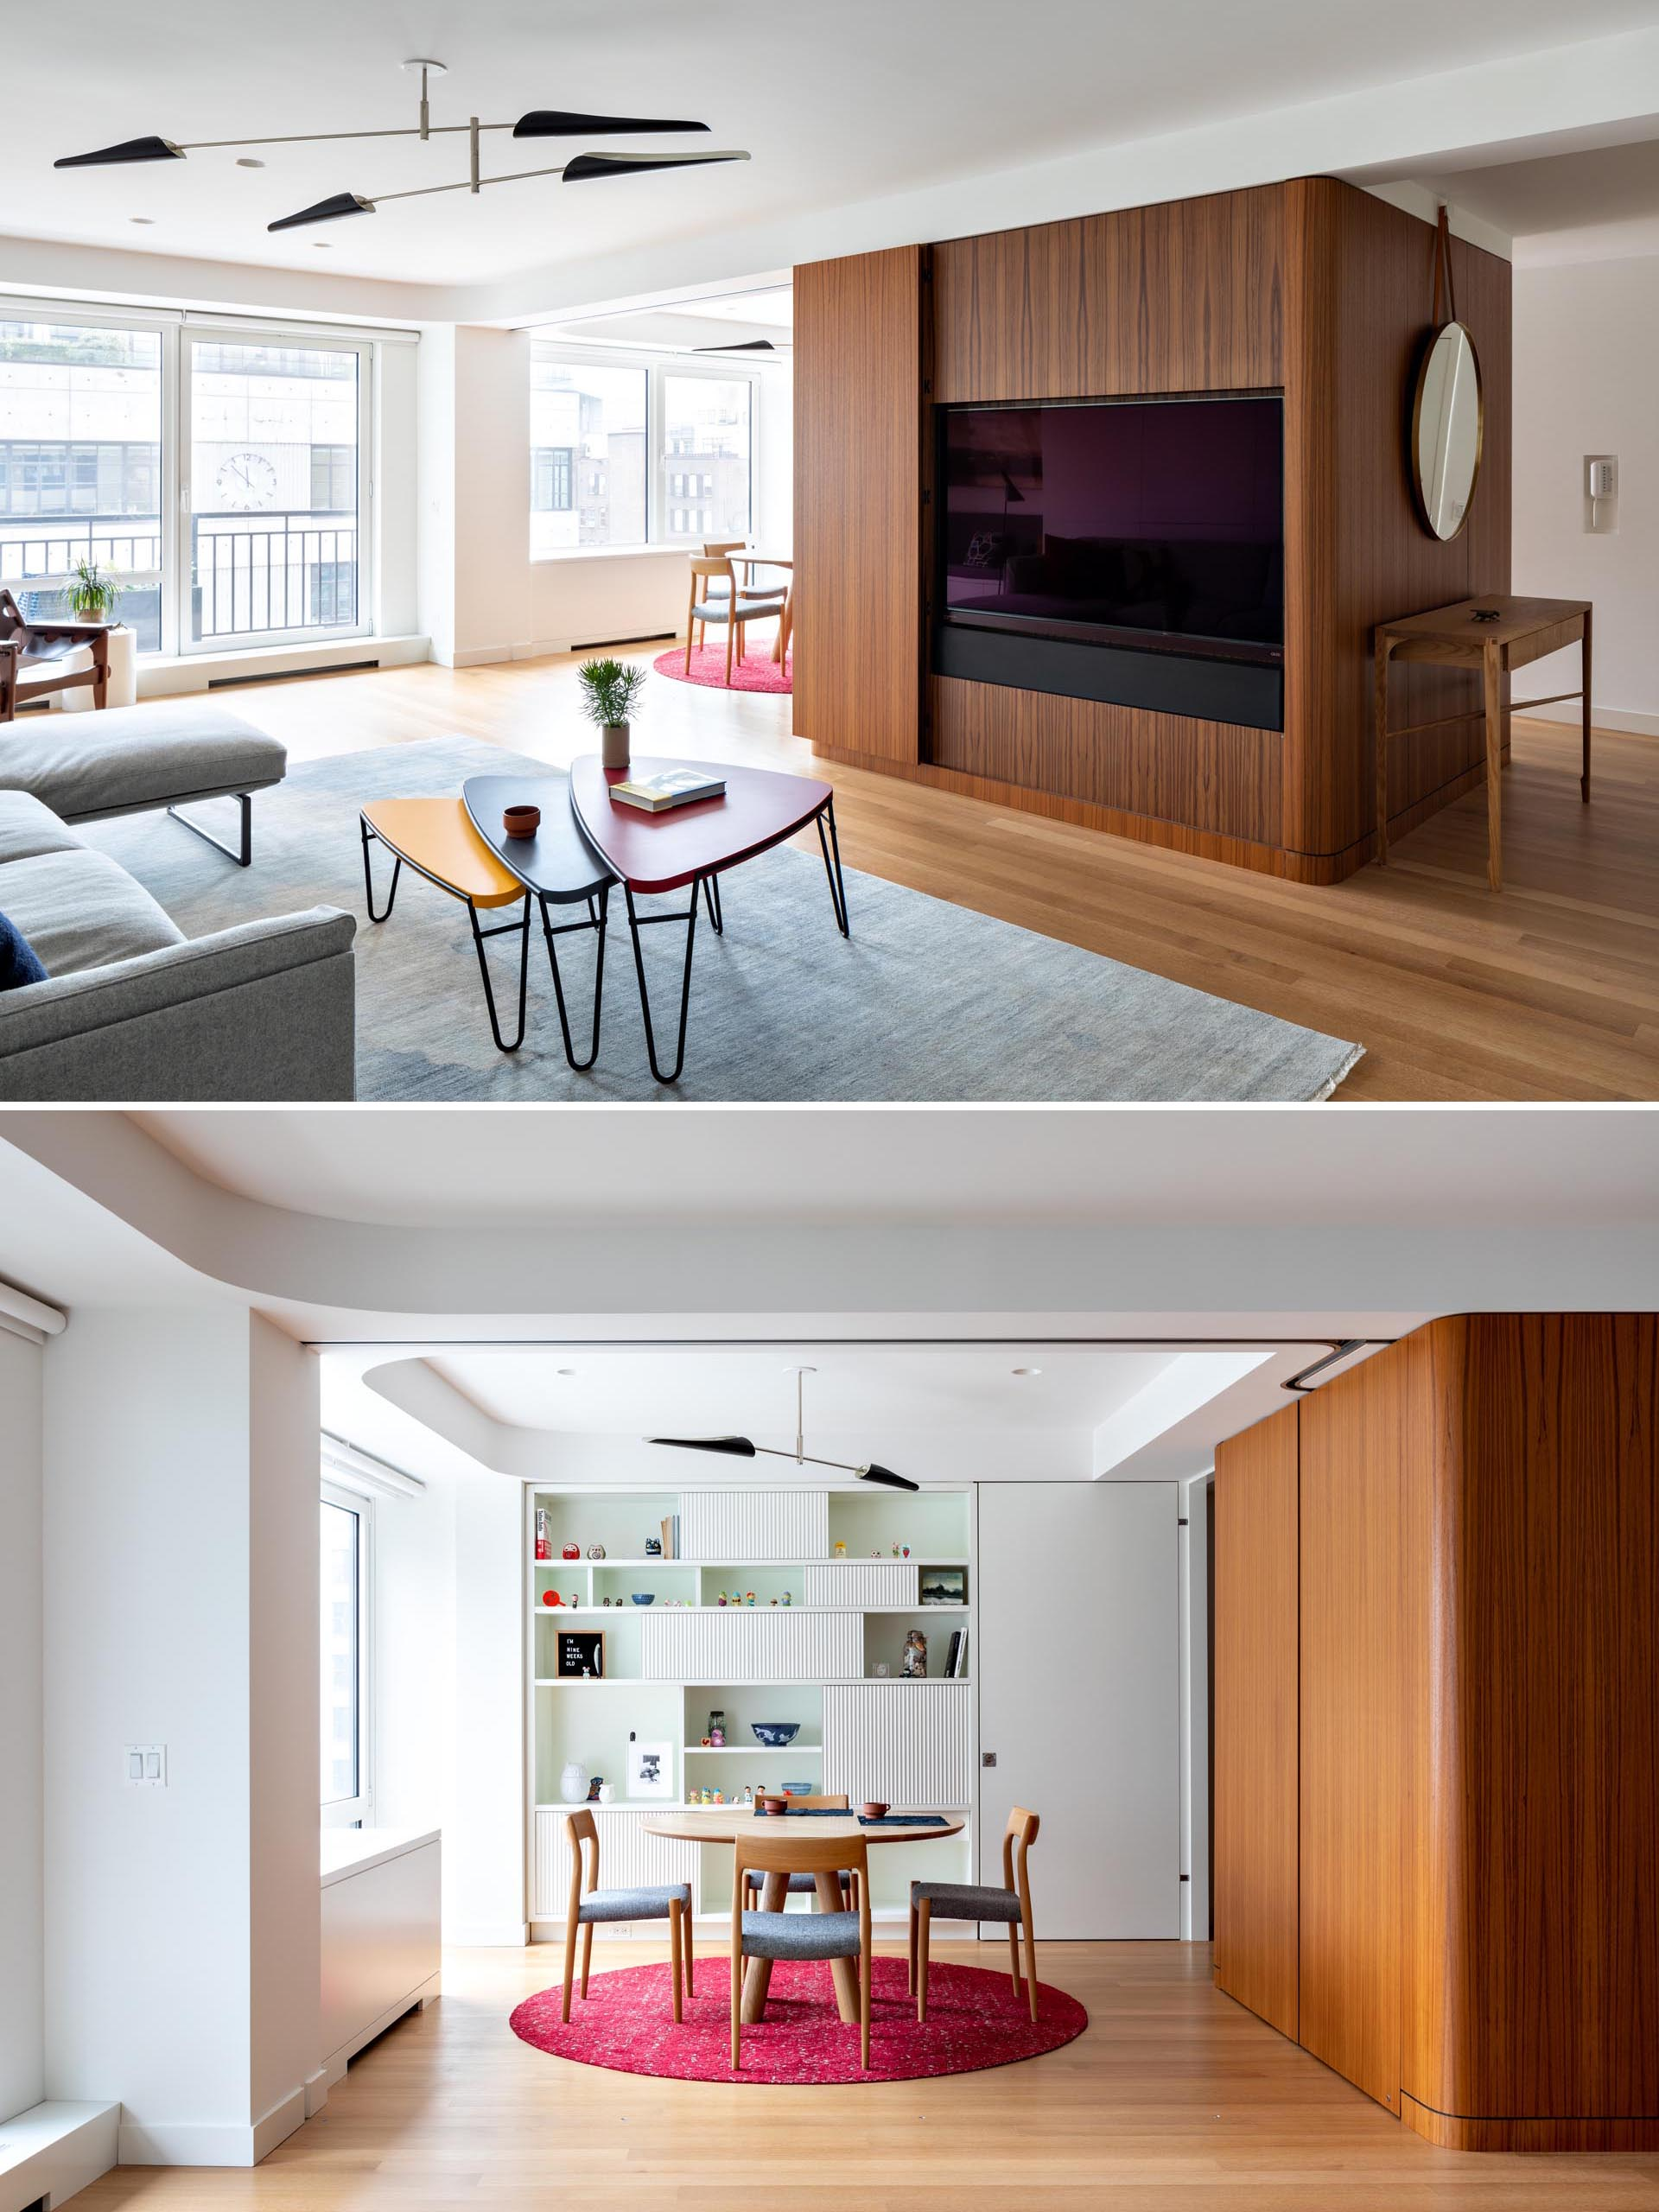 A modern apartment with teak panels that hide the TV, and a dining room with a white bookshelf.